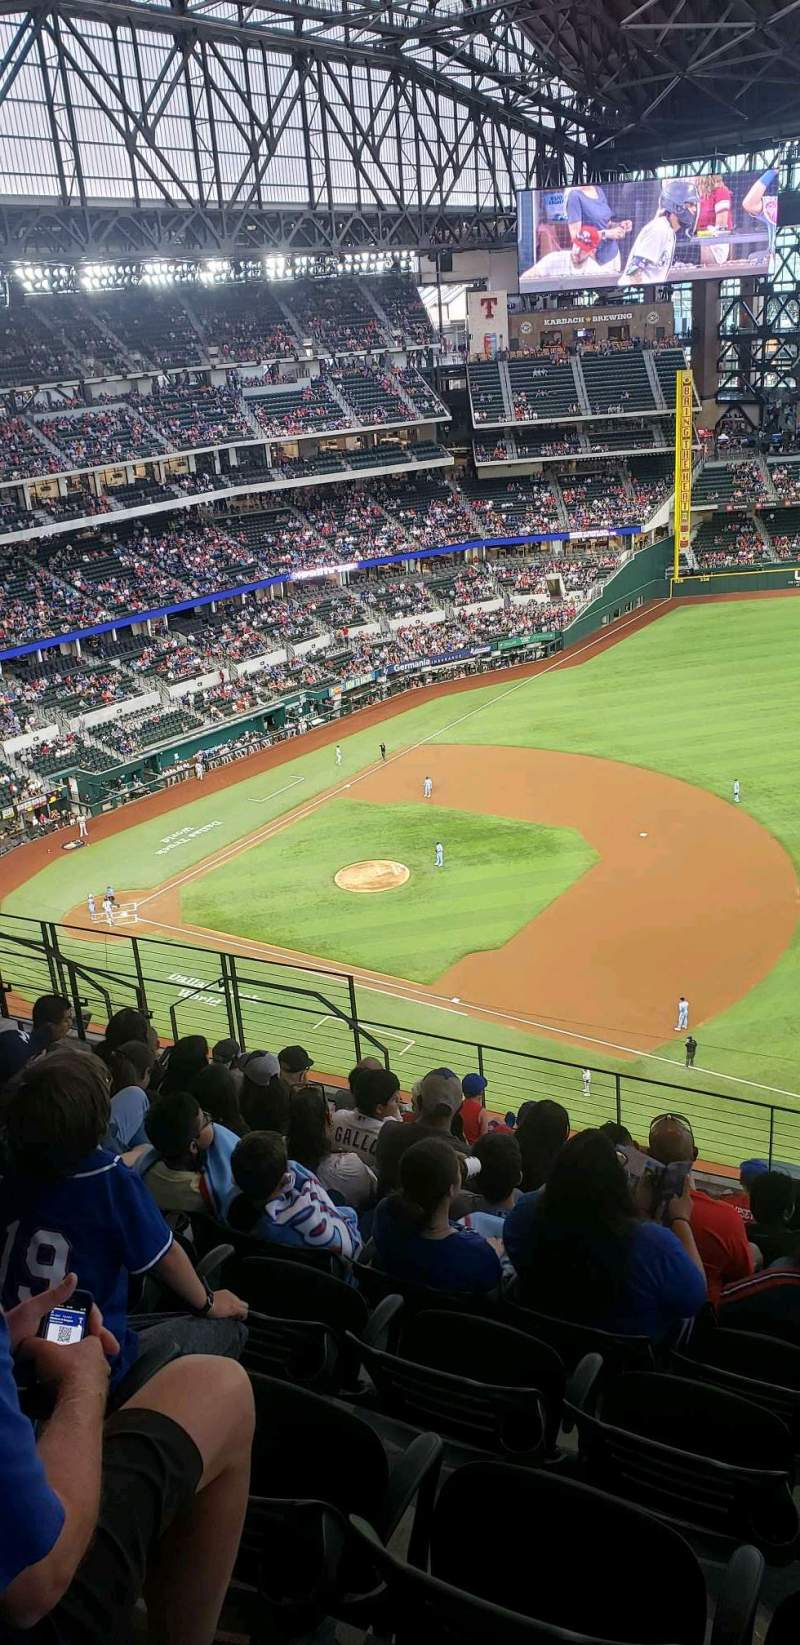 Seating view for Globe Life Field Section 319 Row 10 Seat 13